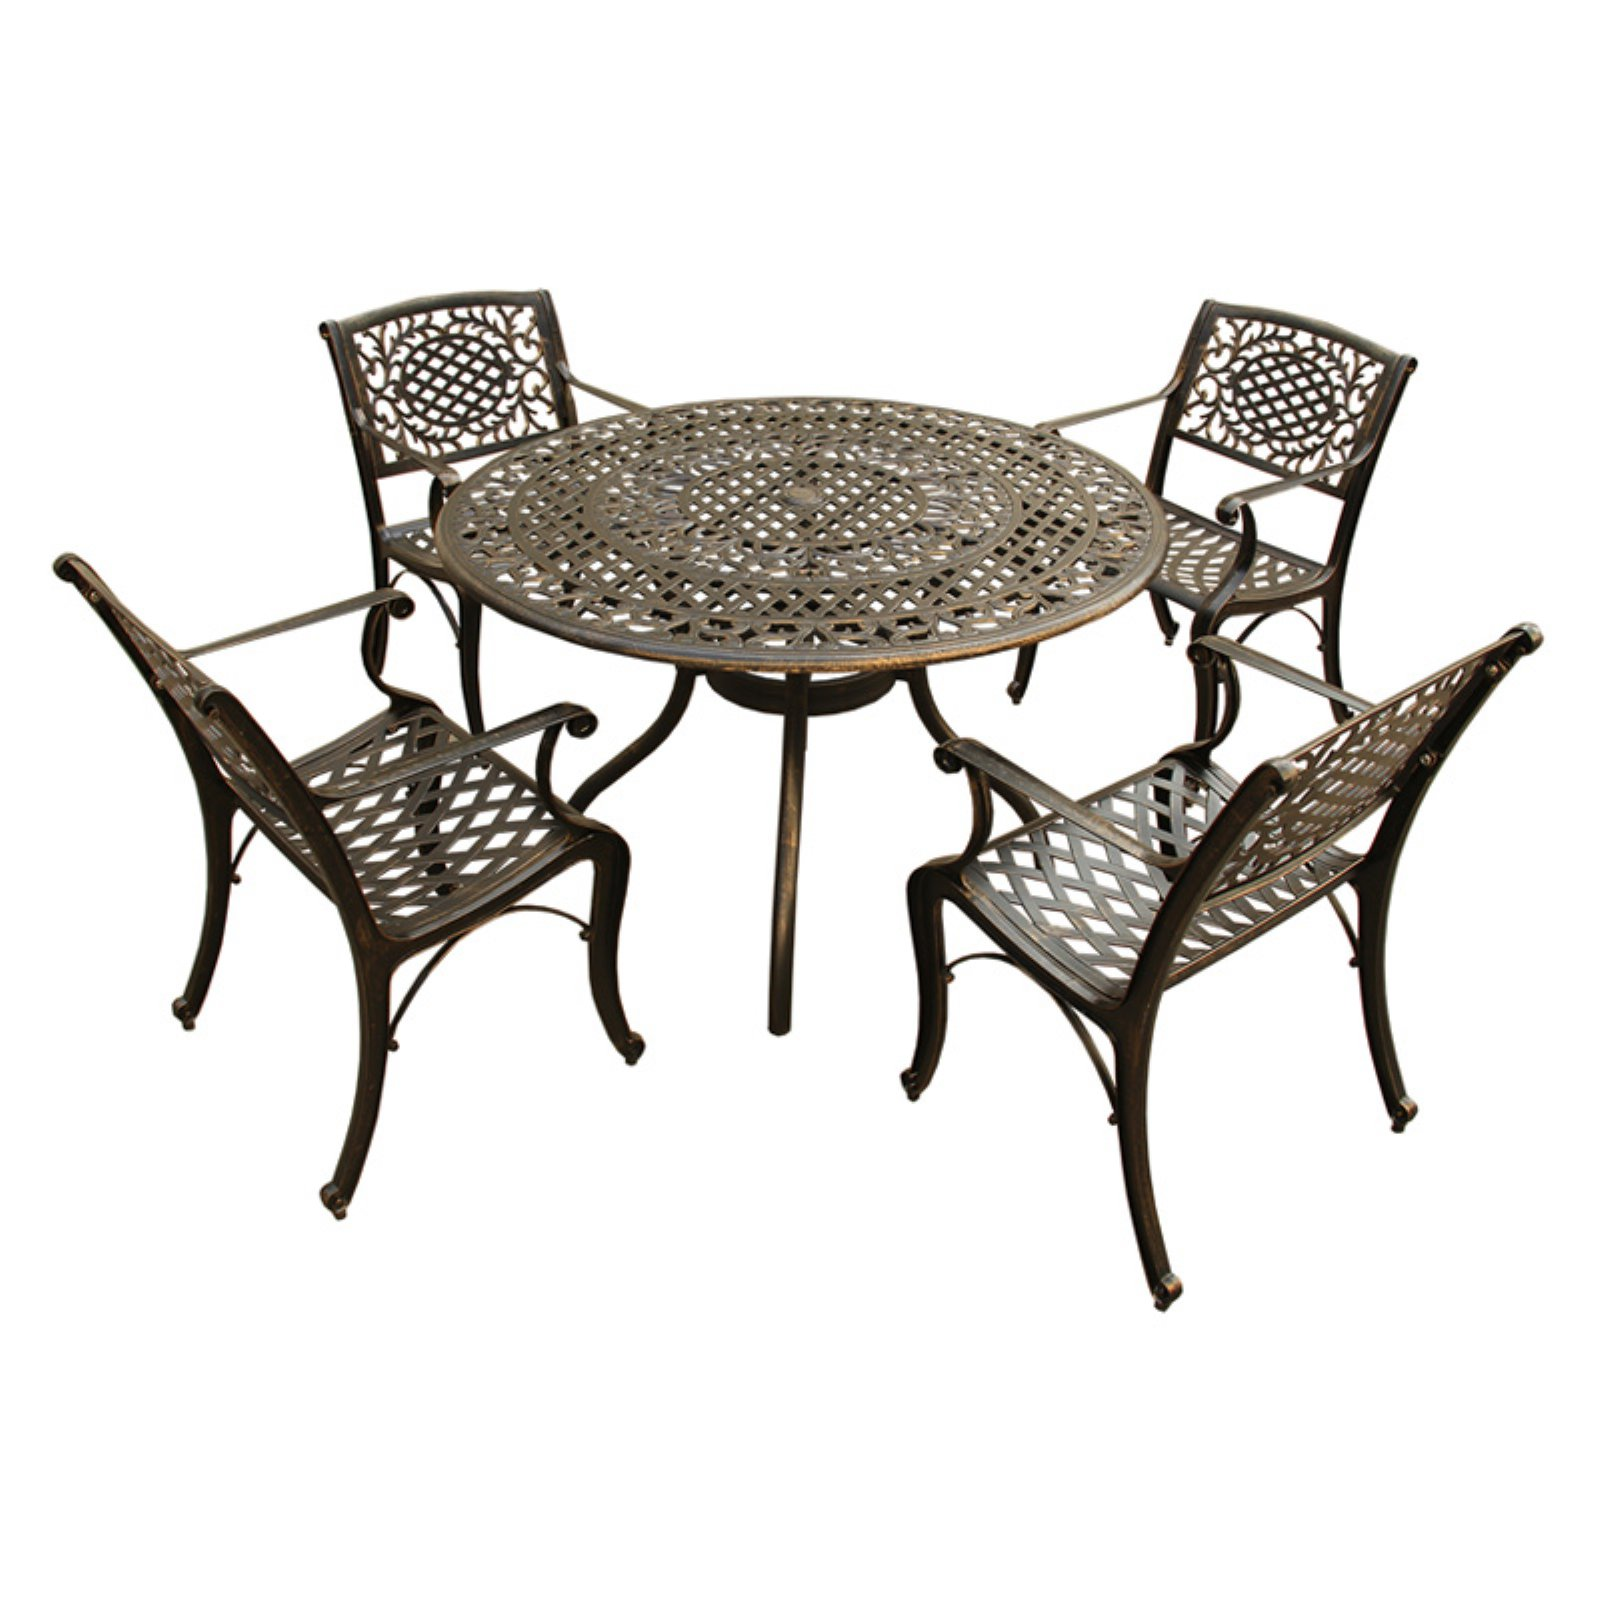 Oakland Living Ornate Mesh Lattice Aluminum 5 Piece Patio Dining Set